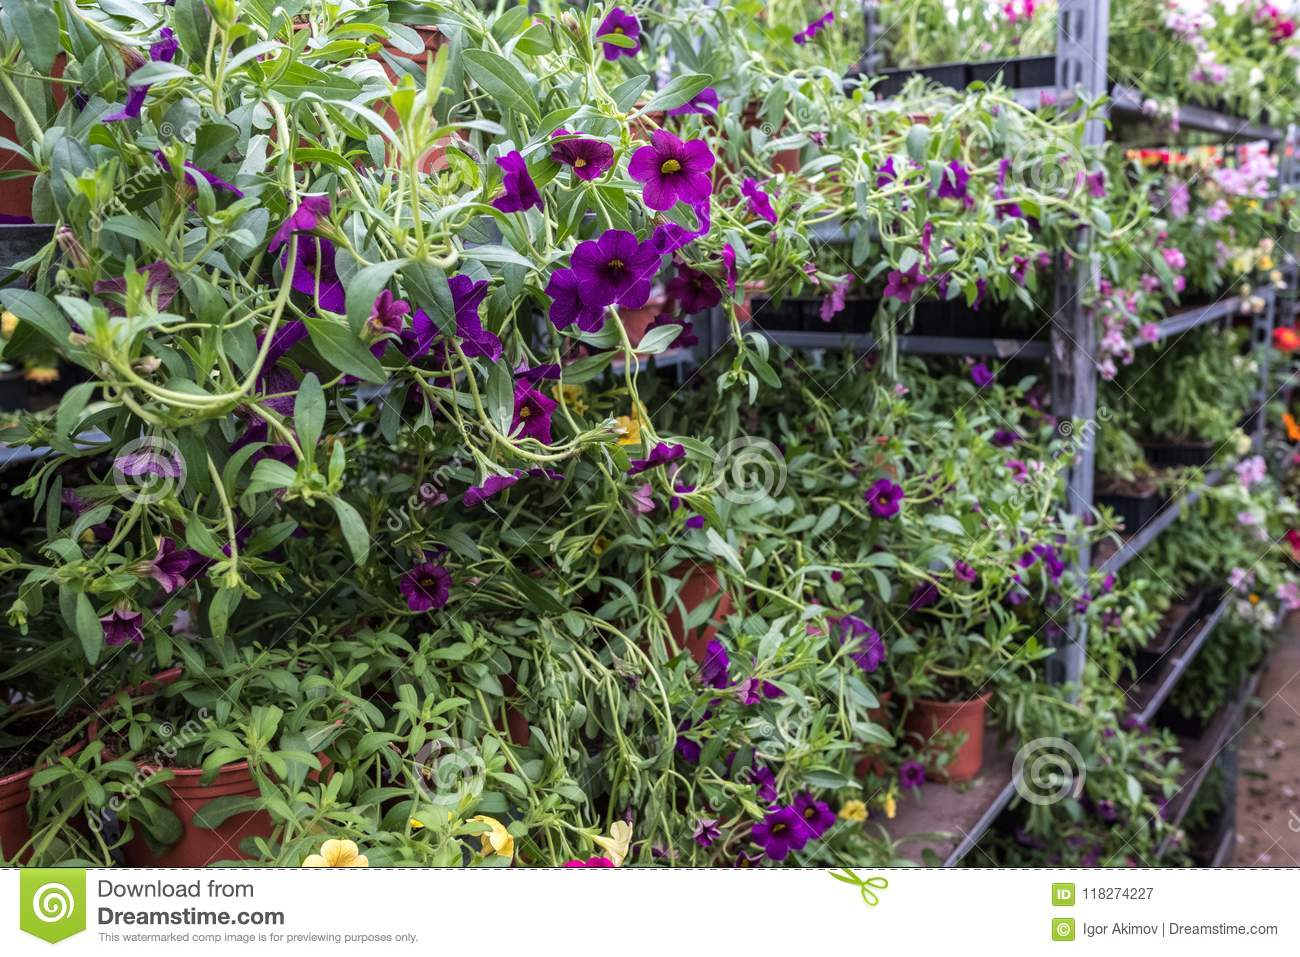 Dreamstime.com & Flower Shop With Plants In Pots With Soil Stock Image - Image of ...